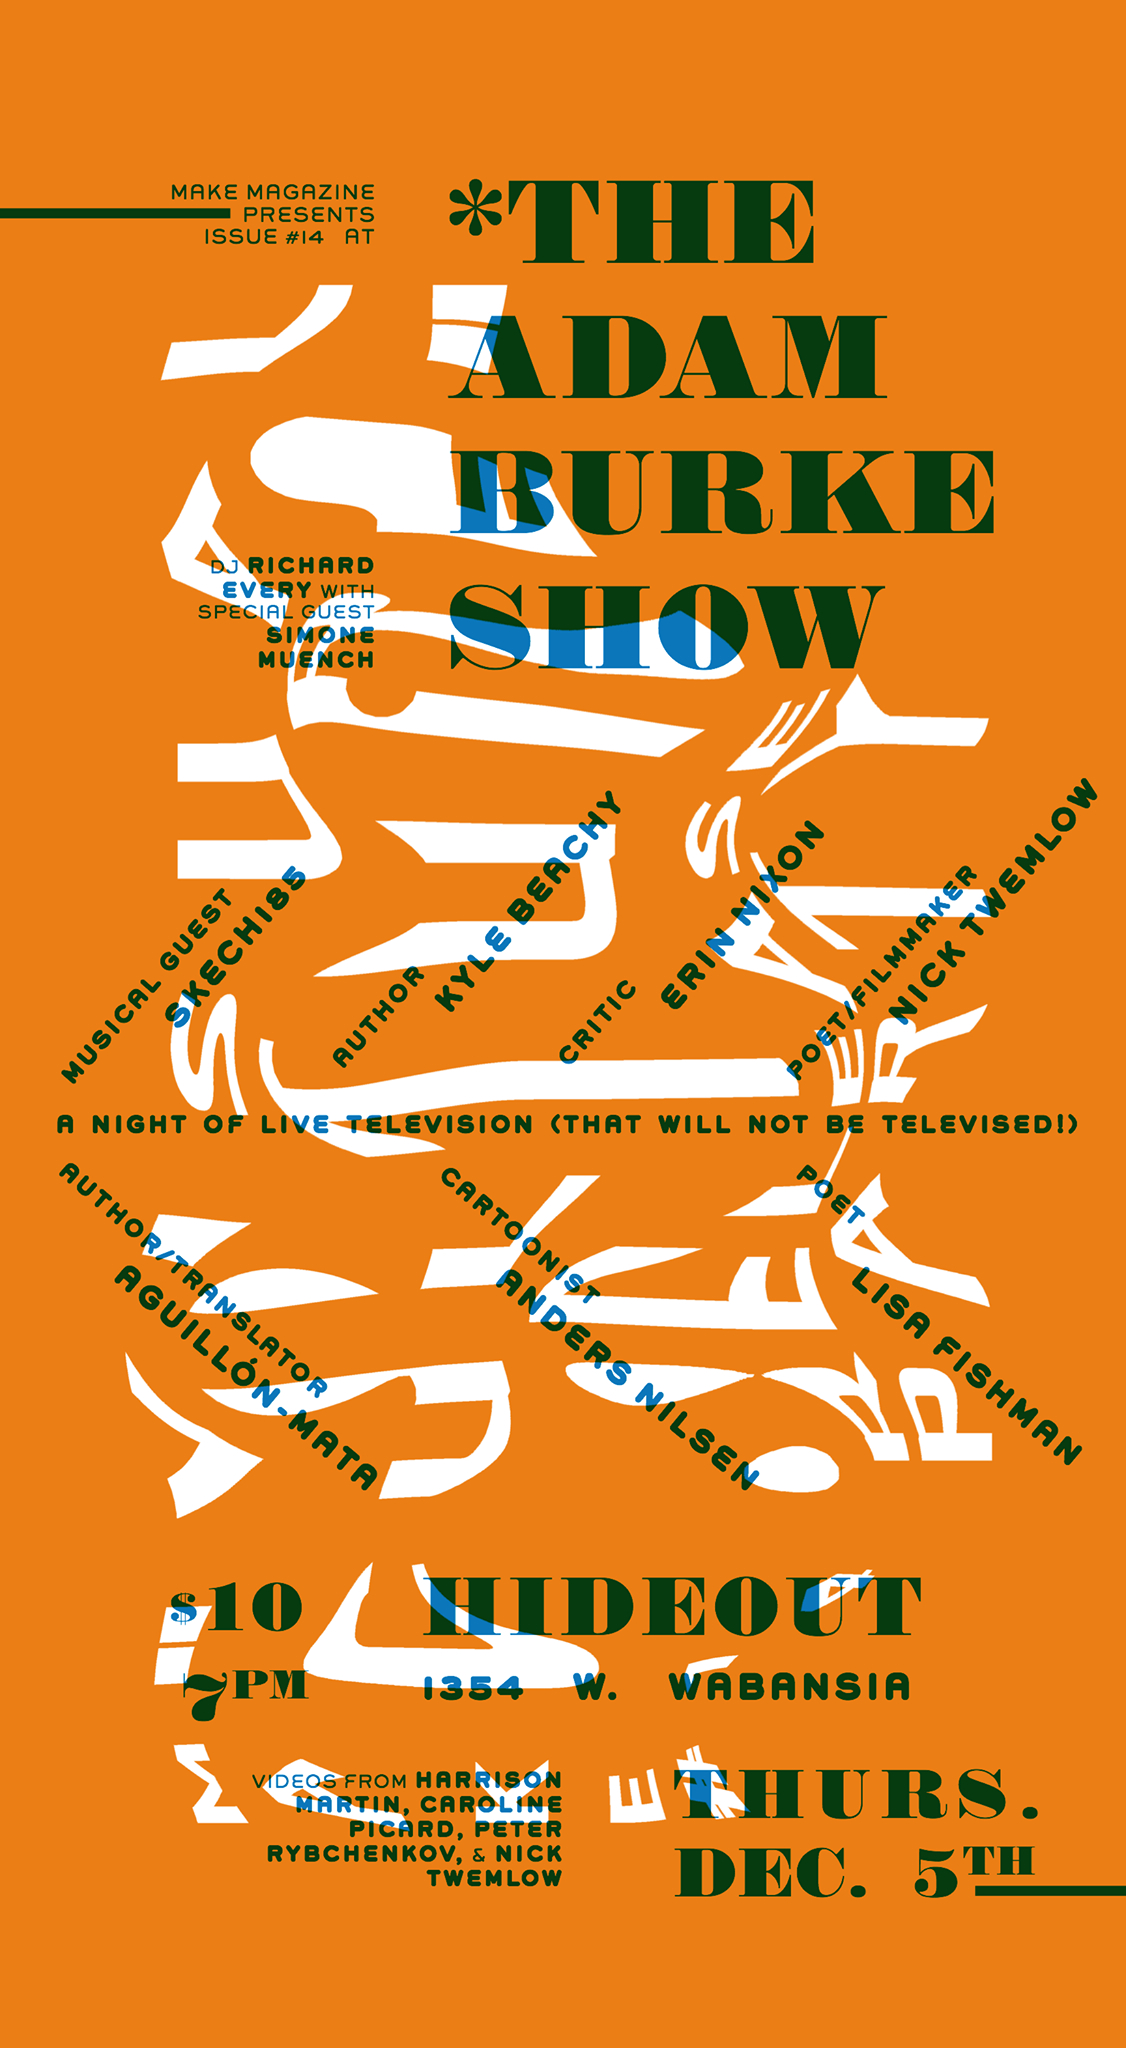 MAKE Magazine - Issue 14 Release Party Poster